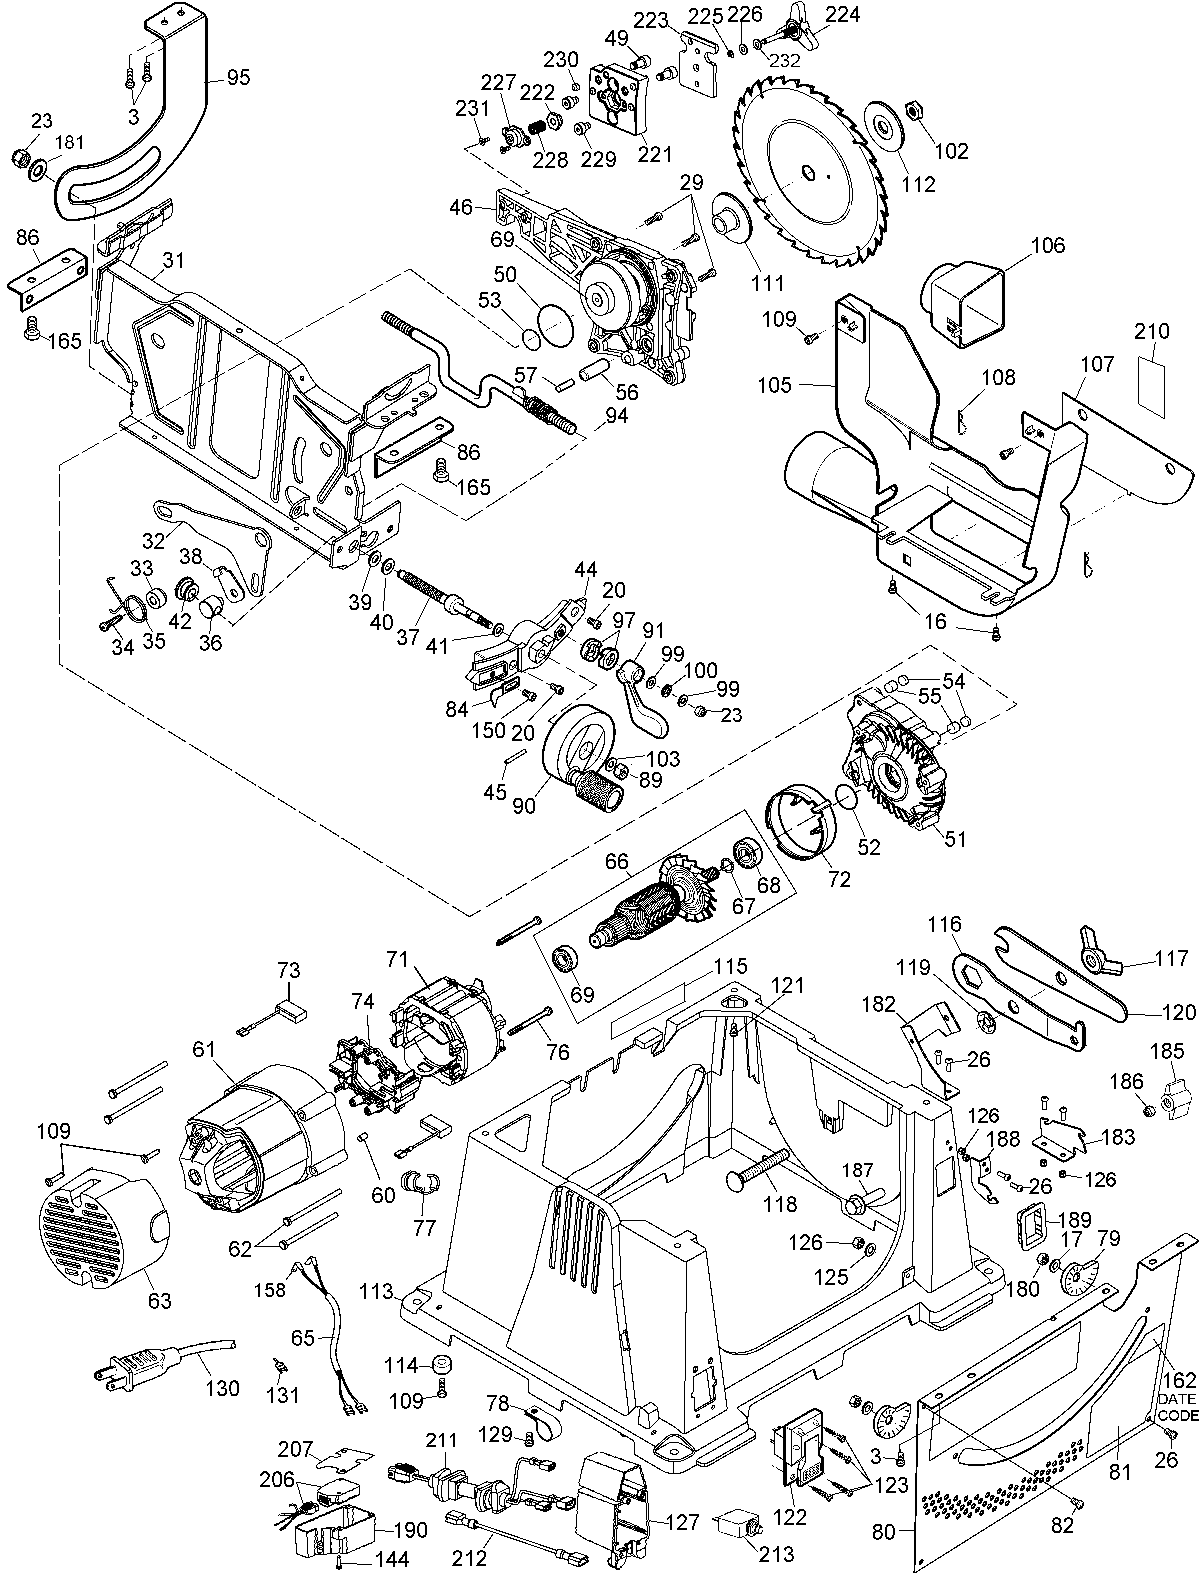 dewalt table saw dwe7491rs » home and furnitures reference,Wiring diagram,Wiring Diagram For A Dw745